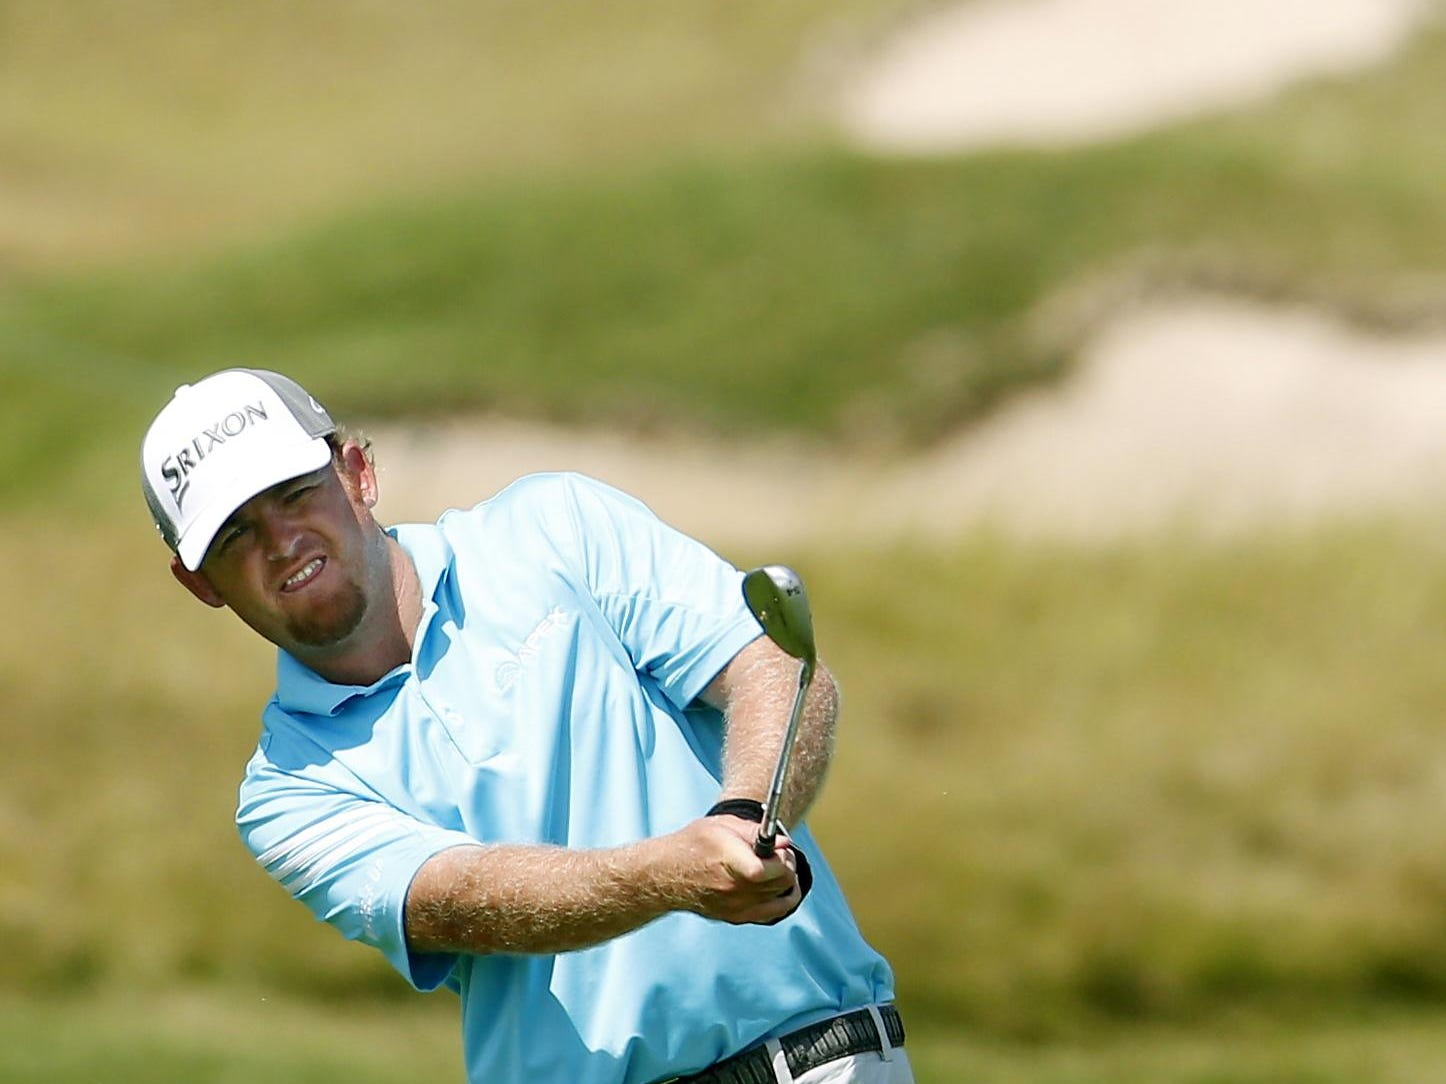 J.B. Holmes hits to the 16th hole during the first round of the PGA Championship golf tournament Thursday, Aug. 13, 2015, at Whistling Straits in Haven, Wis. (AP Photo/Julio Cortez)